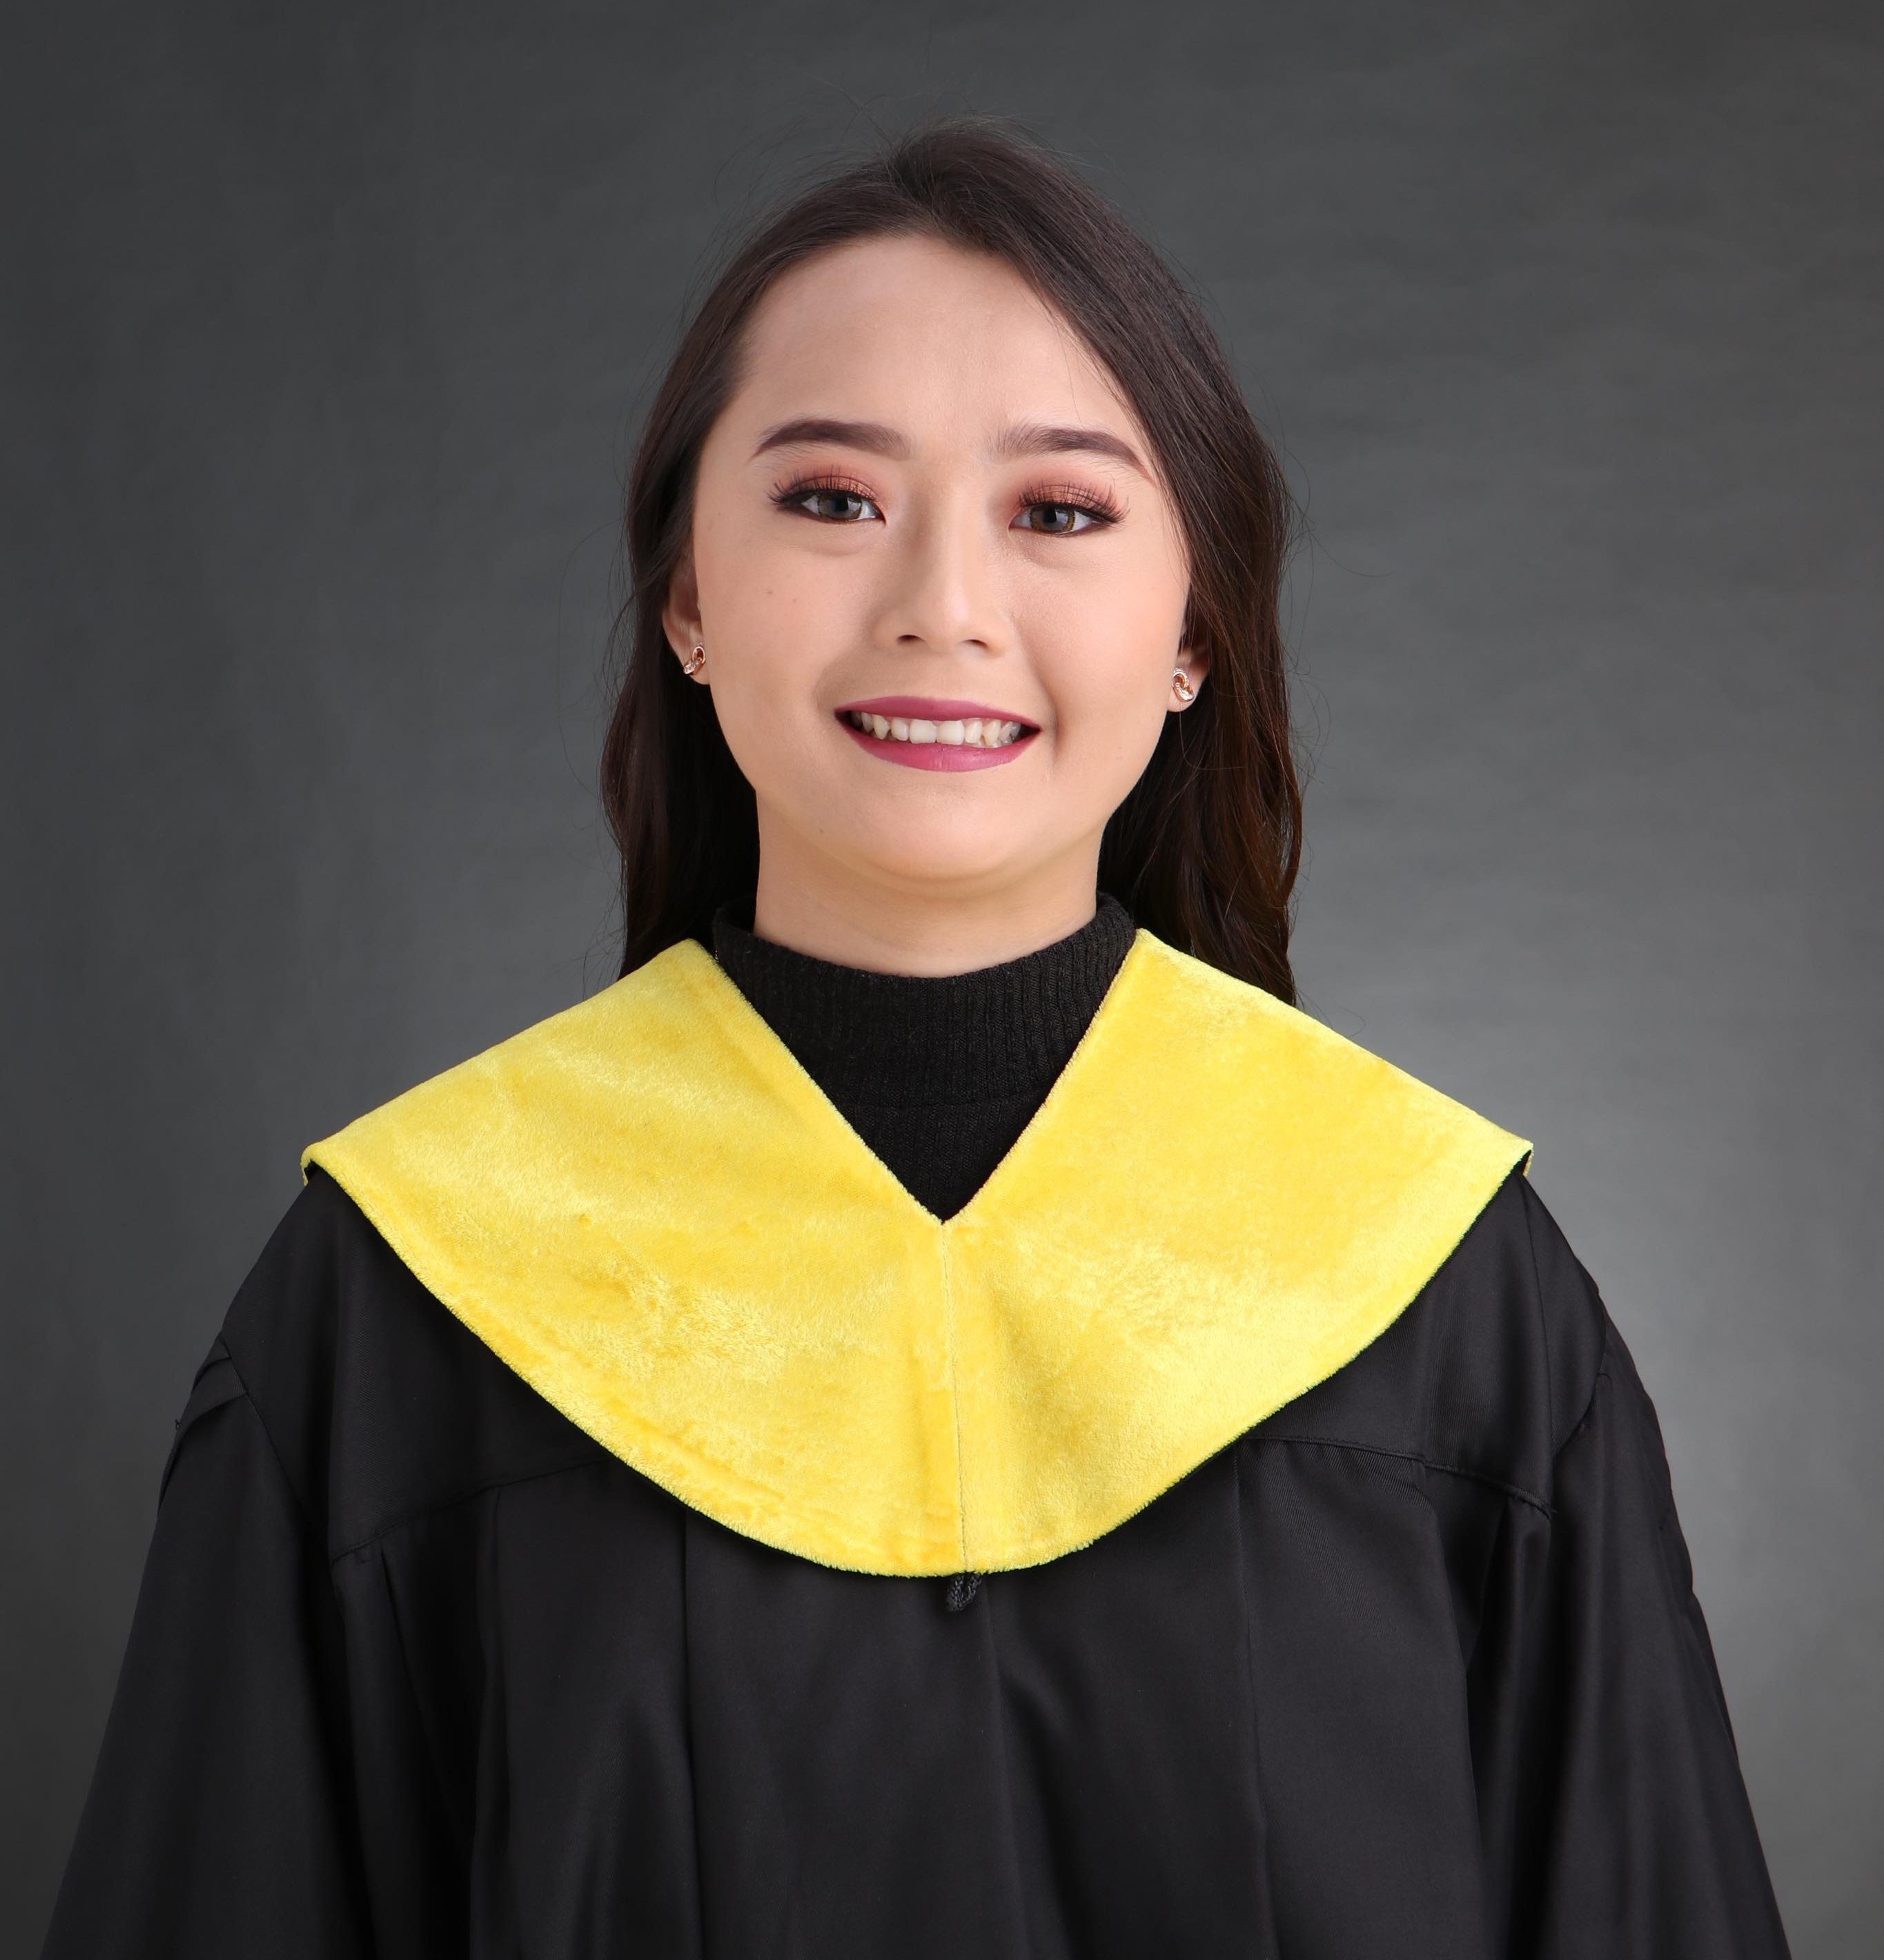 Perpetual Tops July 2019 RadTech Licensure Exam